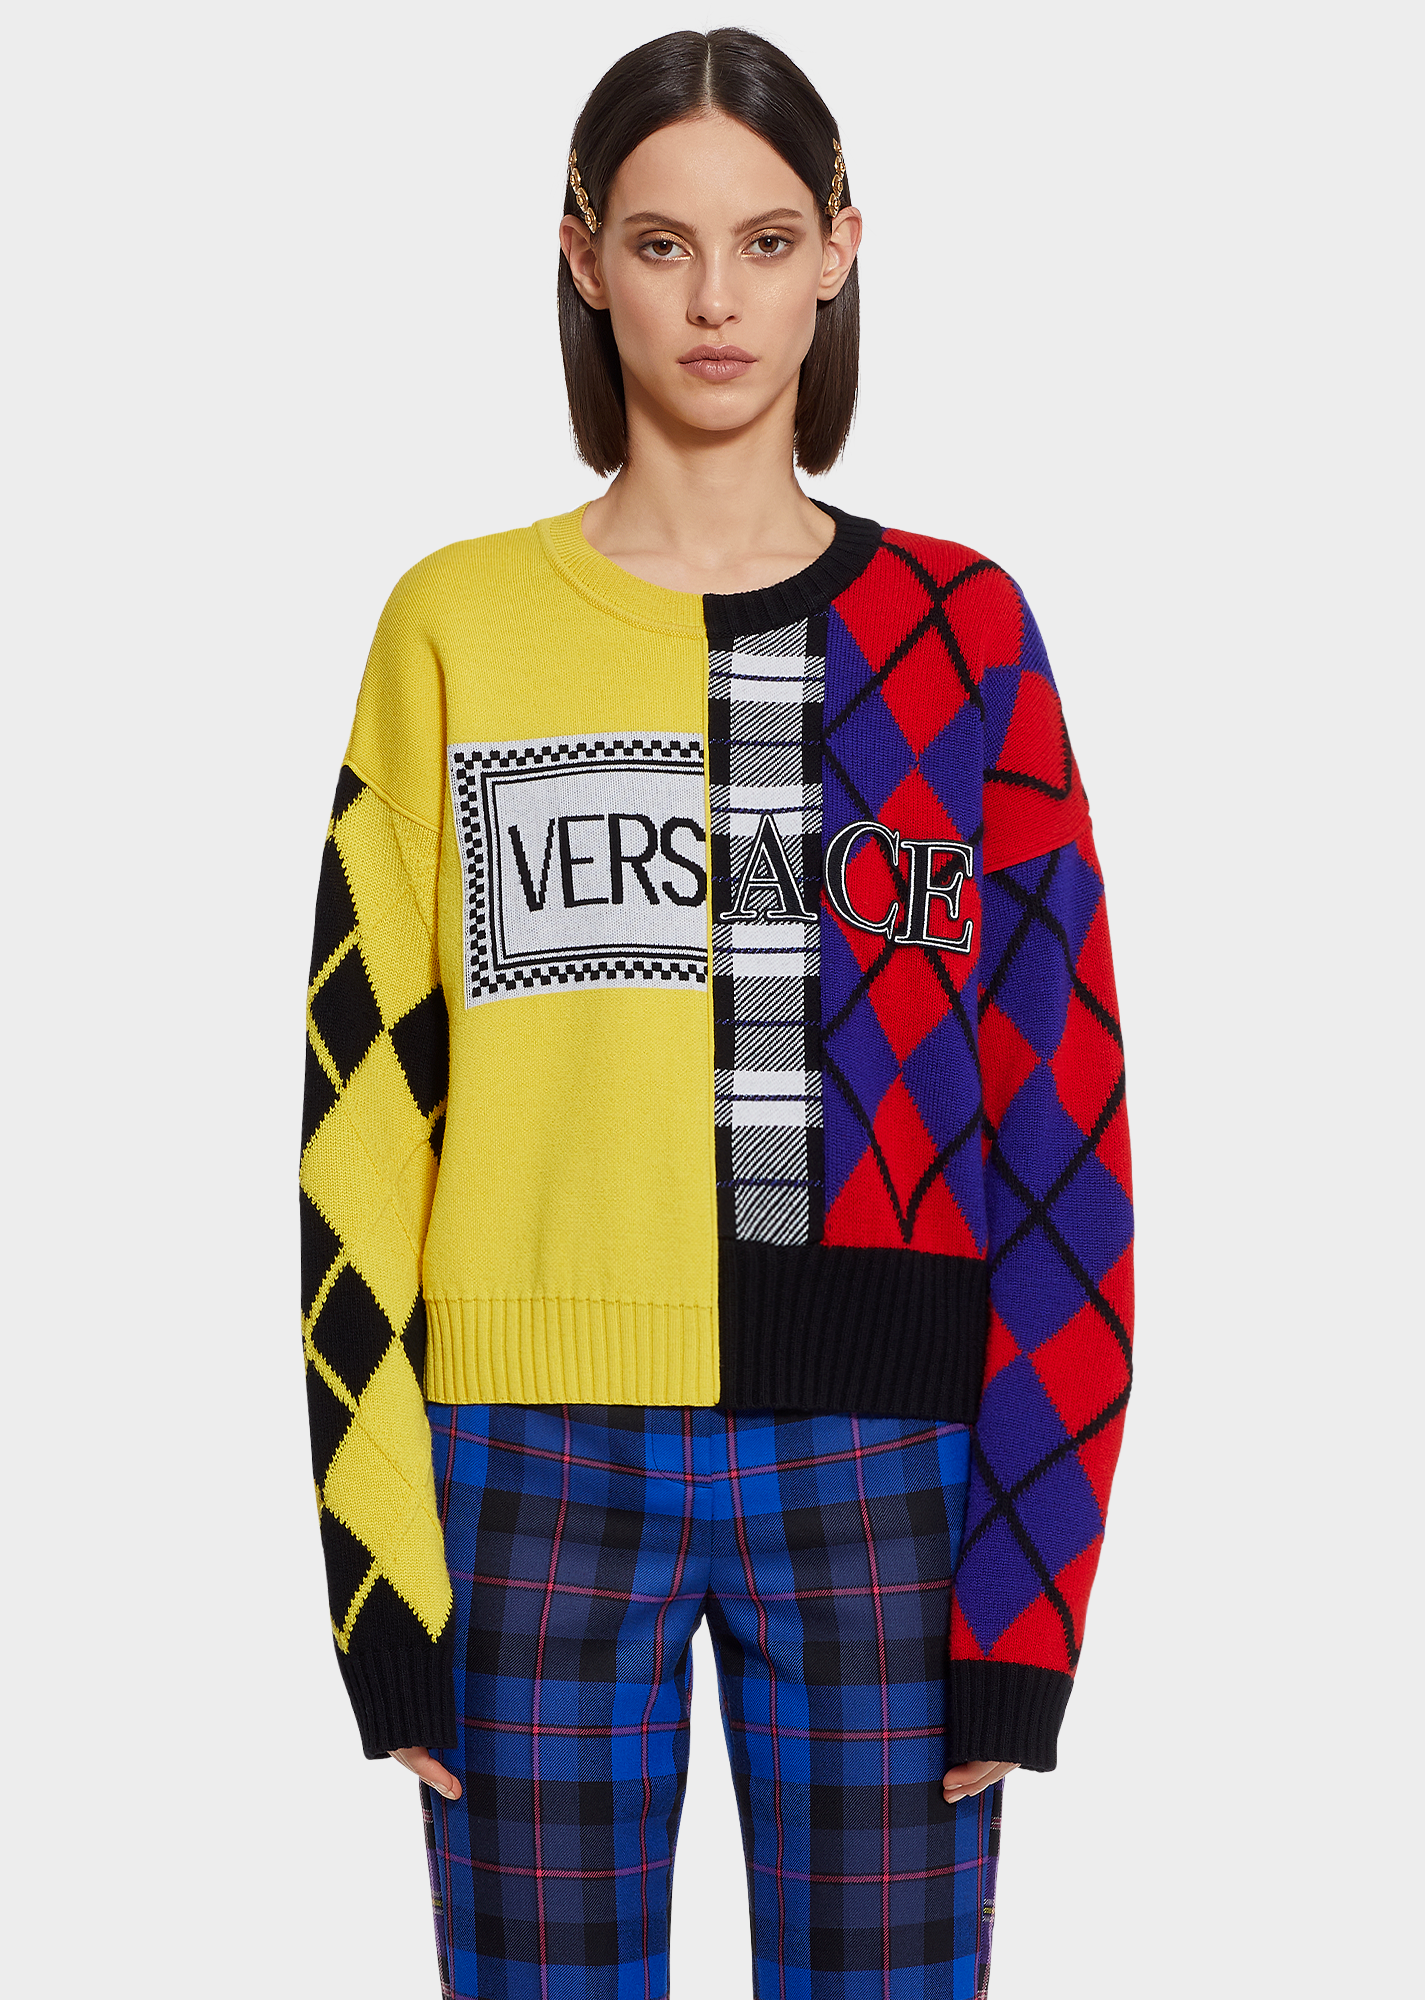 Mixing Prints - Inspiration - Versace 2018 Fall/Winter Collection